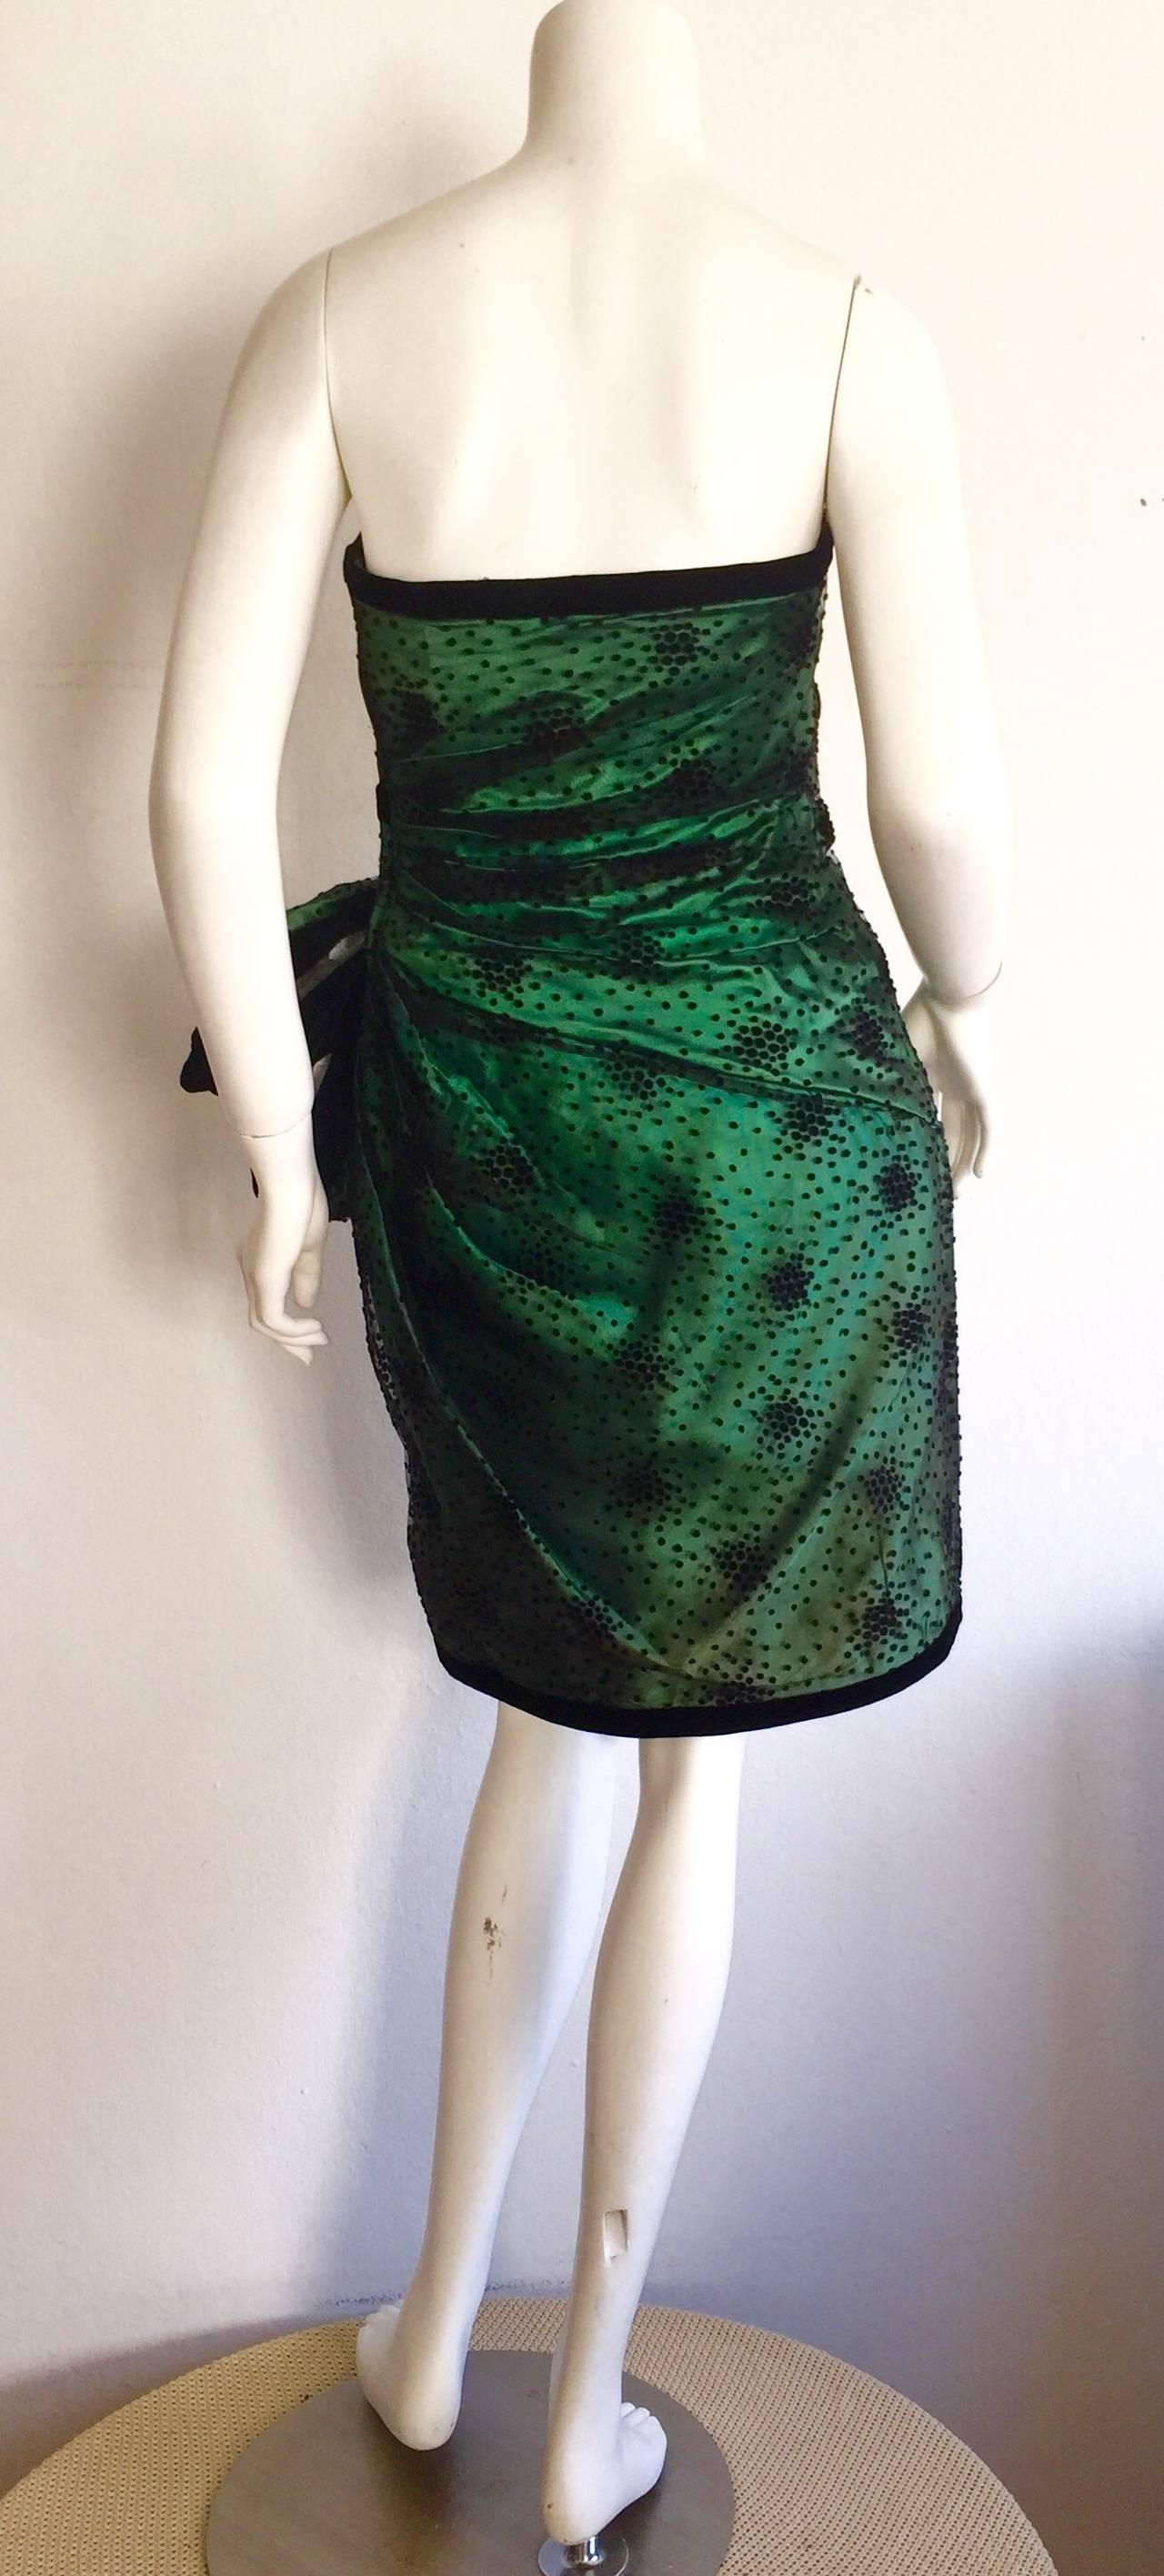 Incredible Vintage Victor Costa Bergdorf Goodman Green + Black Bow Dress 4